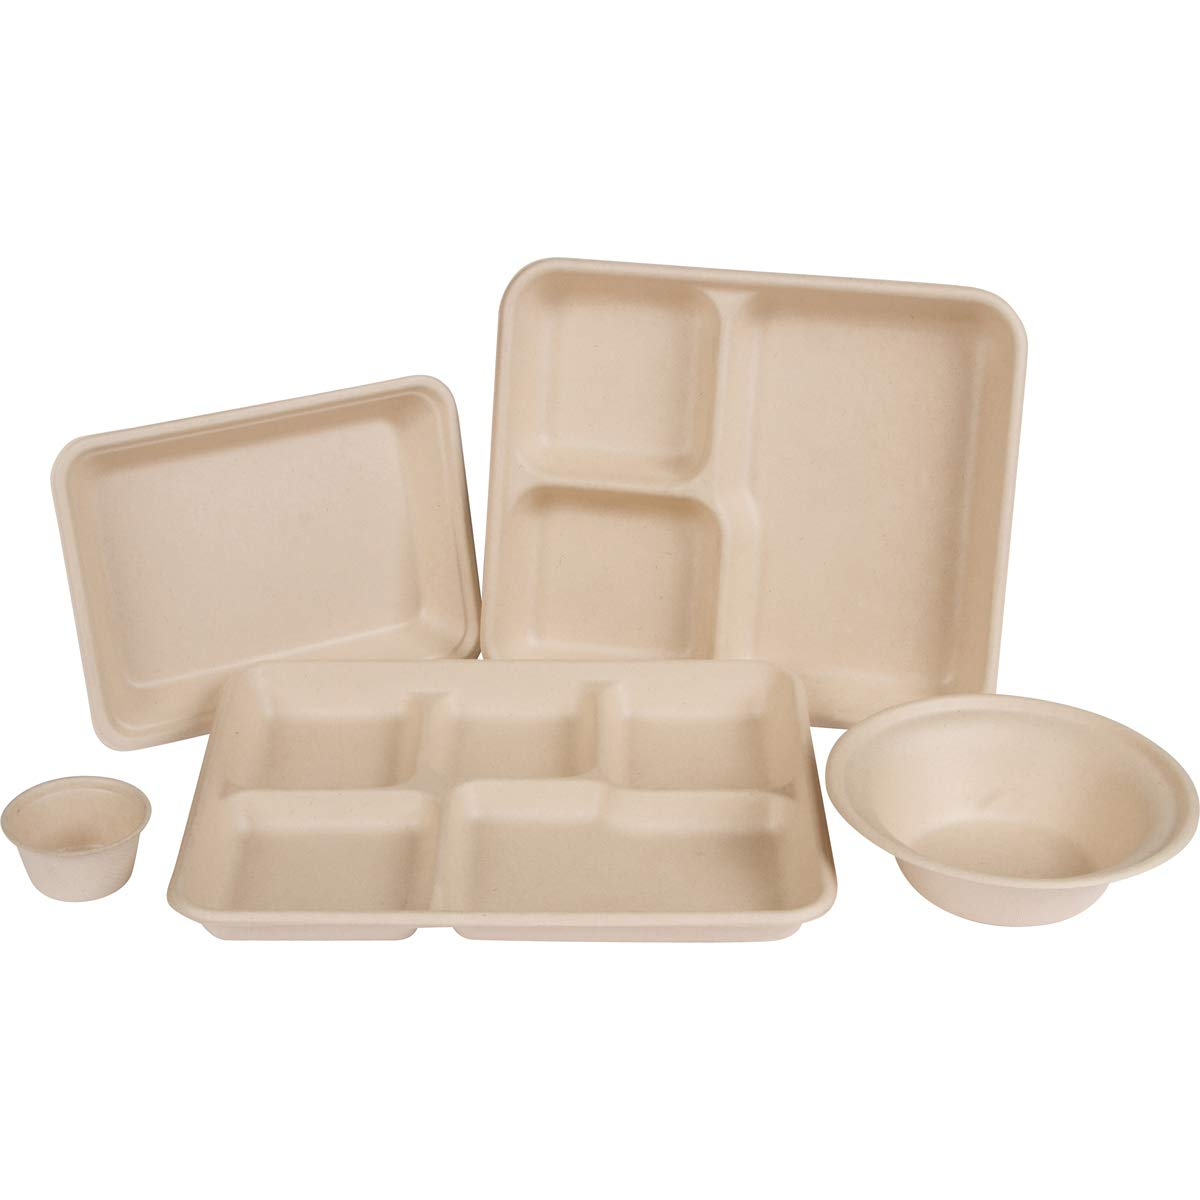 Total Papers,7.5x 5.5 Rectangular Tray Tree Free NO Bagasse, NO Bleach Compostable Wheat Straw Fiber 500 per case Environmentally Responsible 100/% Biodegradable